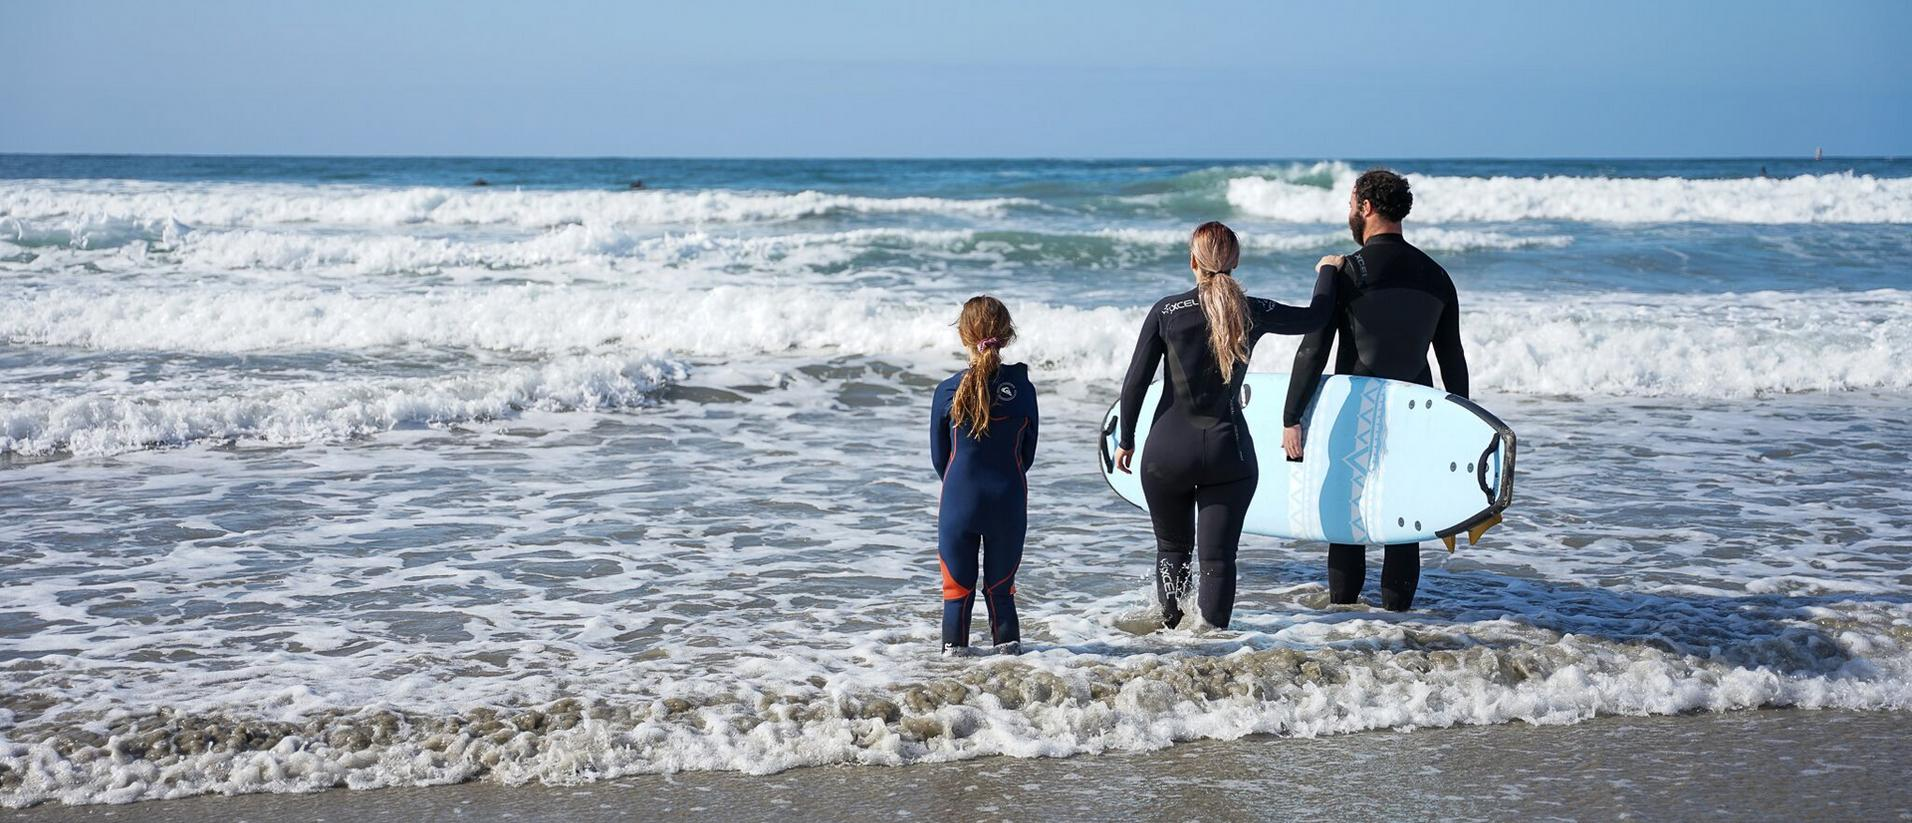 Picture of a people about to go surfing, a man holding a surfboard with a women holding his shoulder with a young girl all standing in the whitewater as waves roll in towards them.